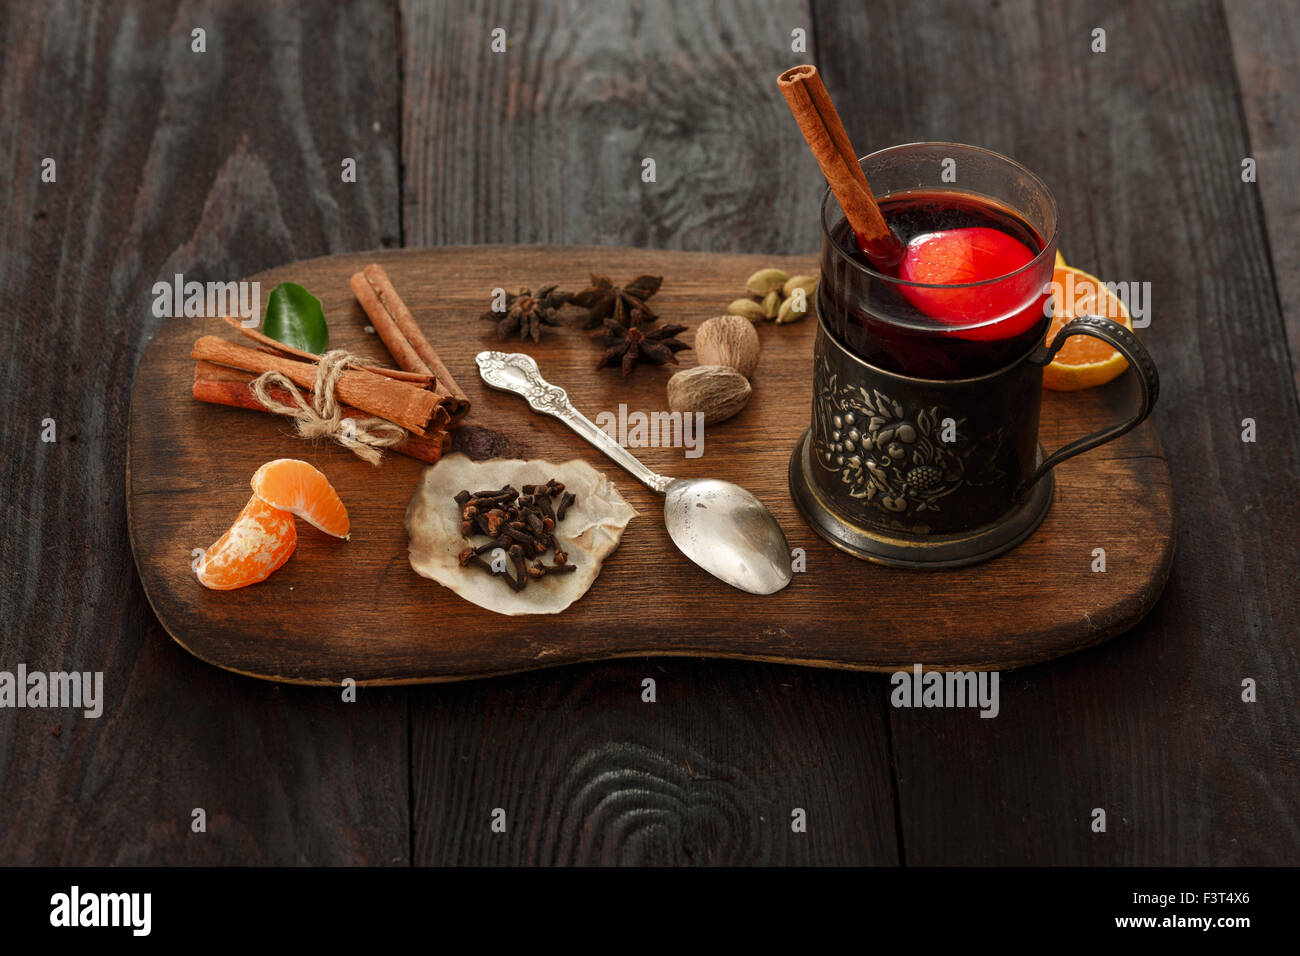 Holztisch Glas Mulled Wine Cinnamon Orange Stockfotos And Mulled Wine